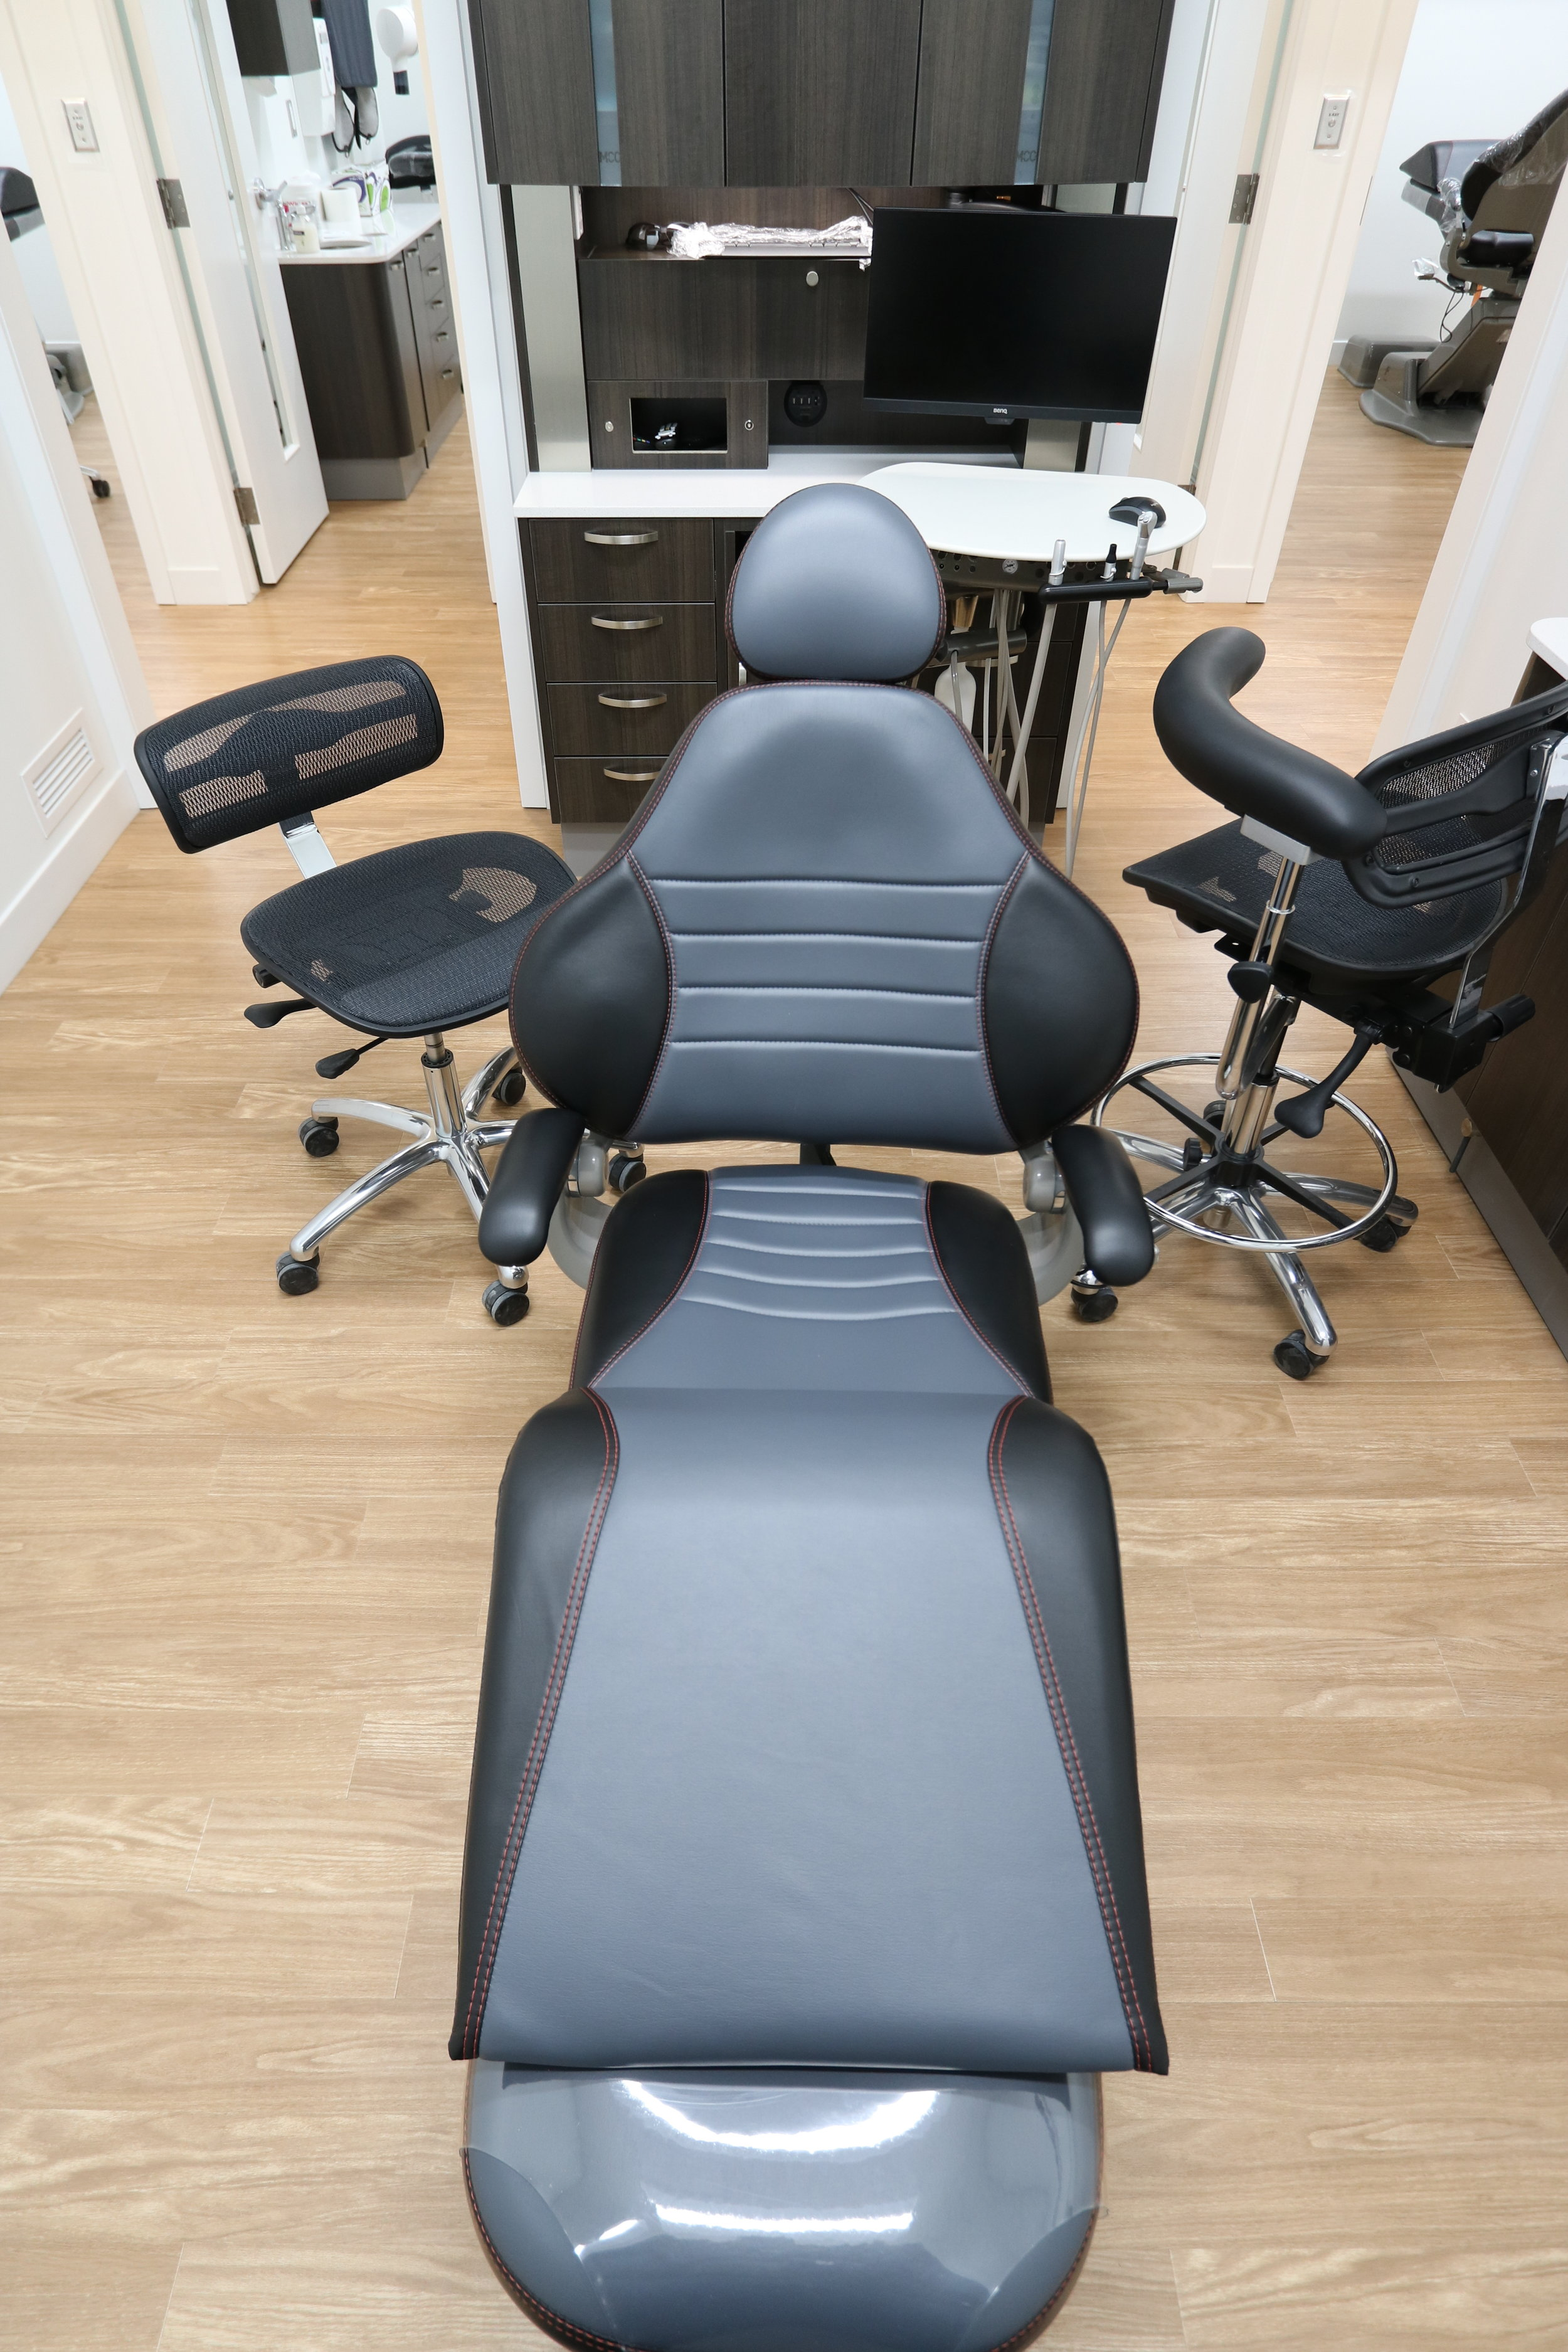 Massaging Chairs - Let the chair massage your stress away while getting treatment at Yorkton Dental.